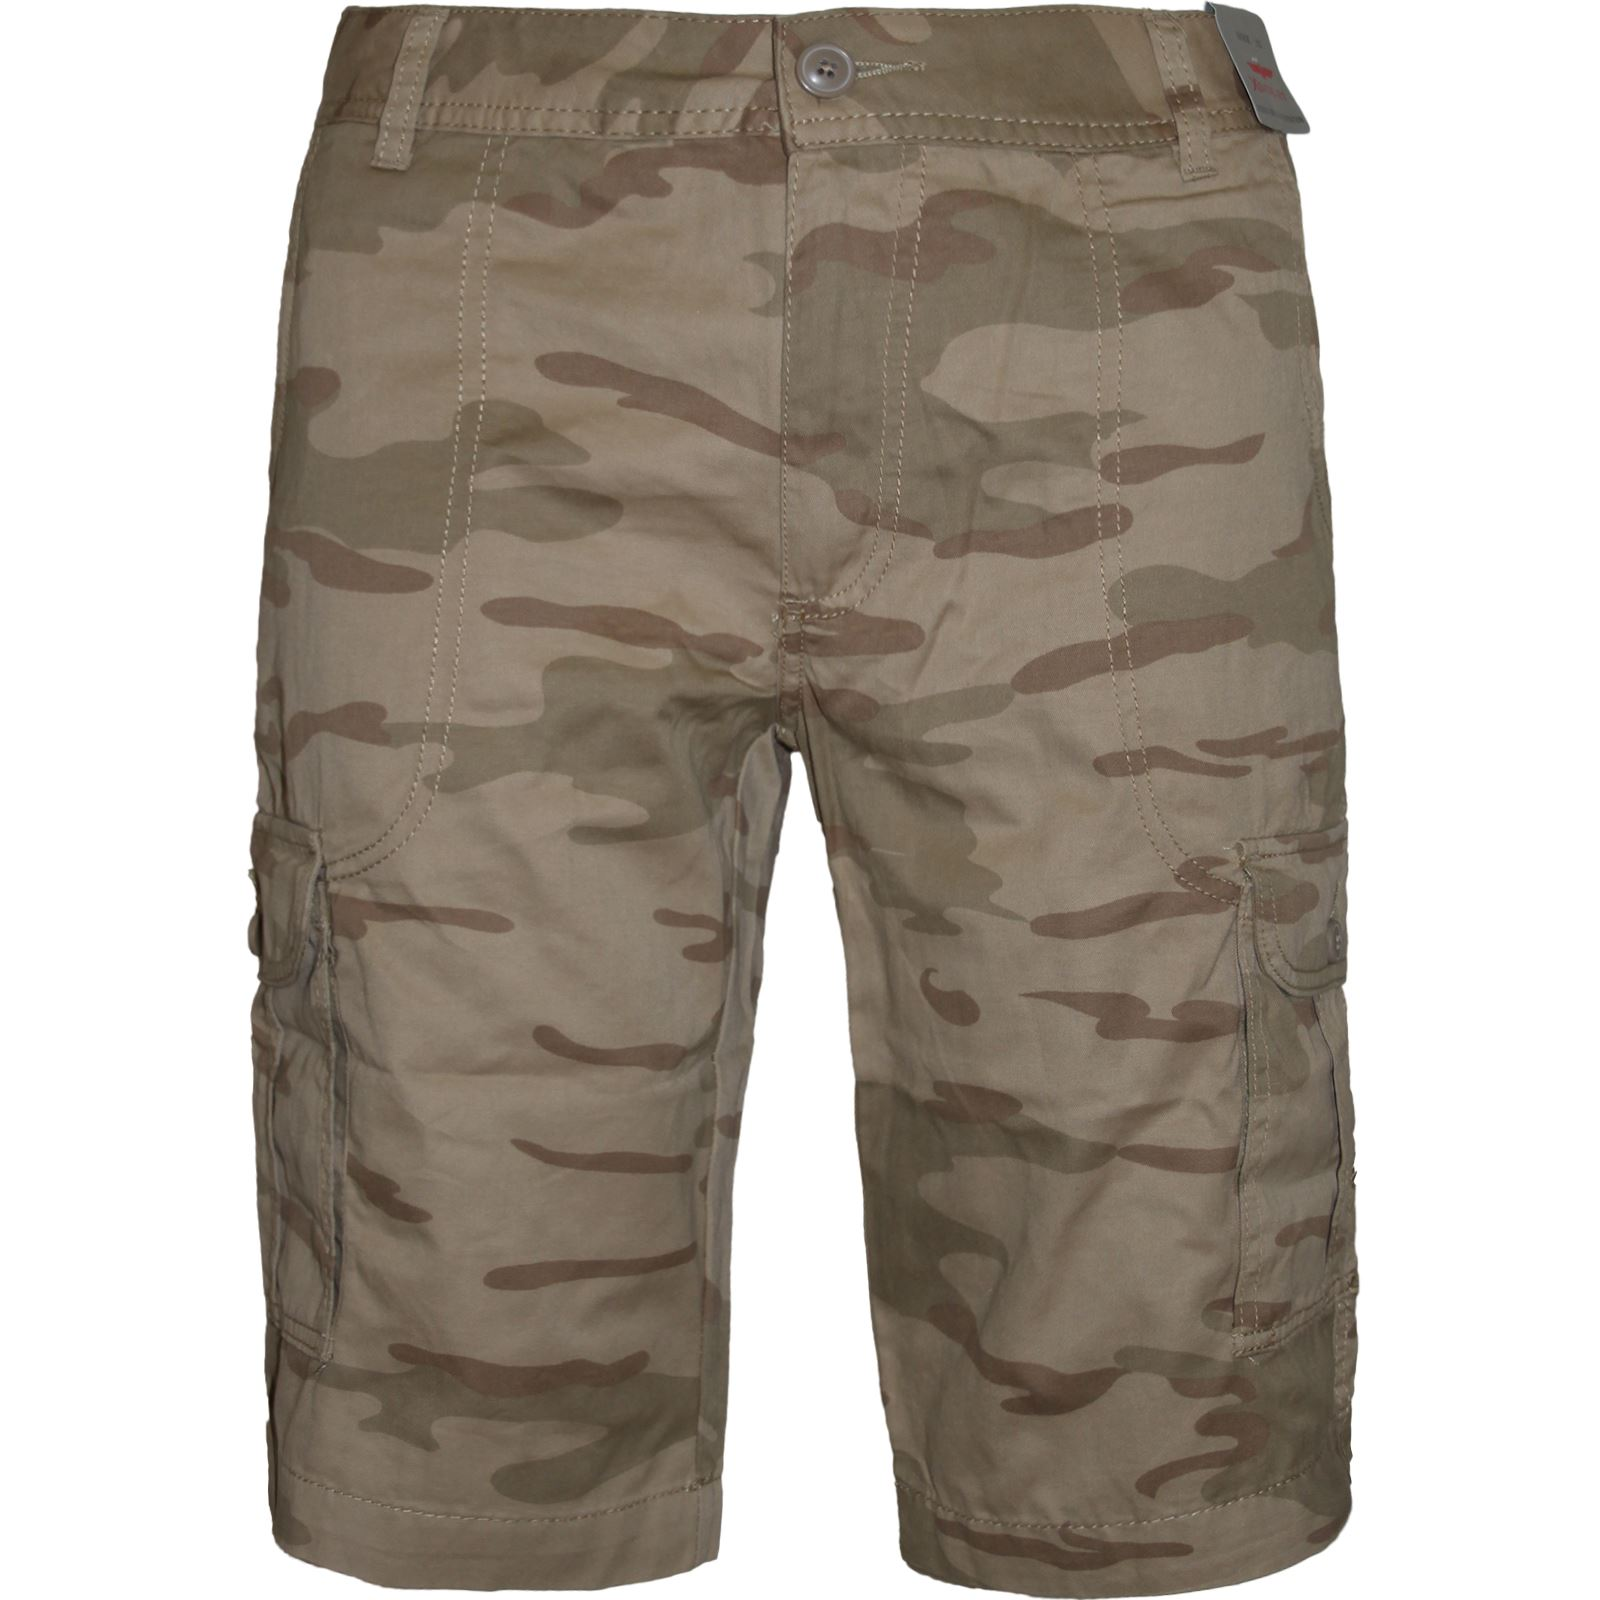 Stuccu: Best Deals on camo chino. Up To 70% offFree Shipping · Compare Prices · Up to 70% off · Special DiscountsService catalog: 70% Off, Holidays Discounts, In Stock.